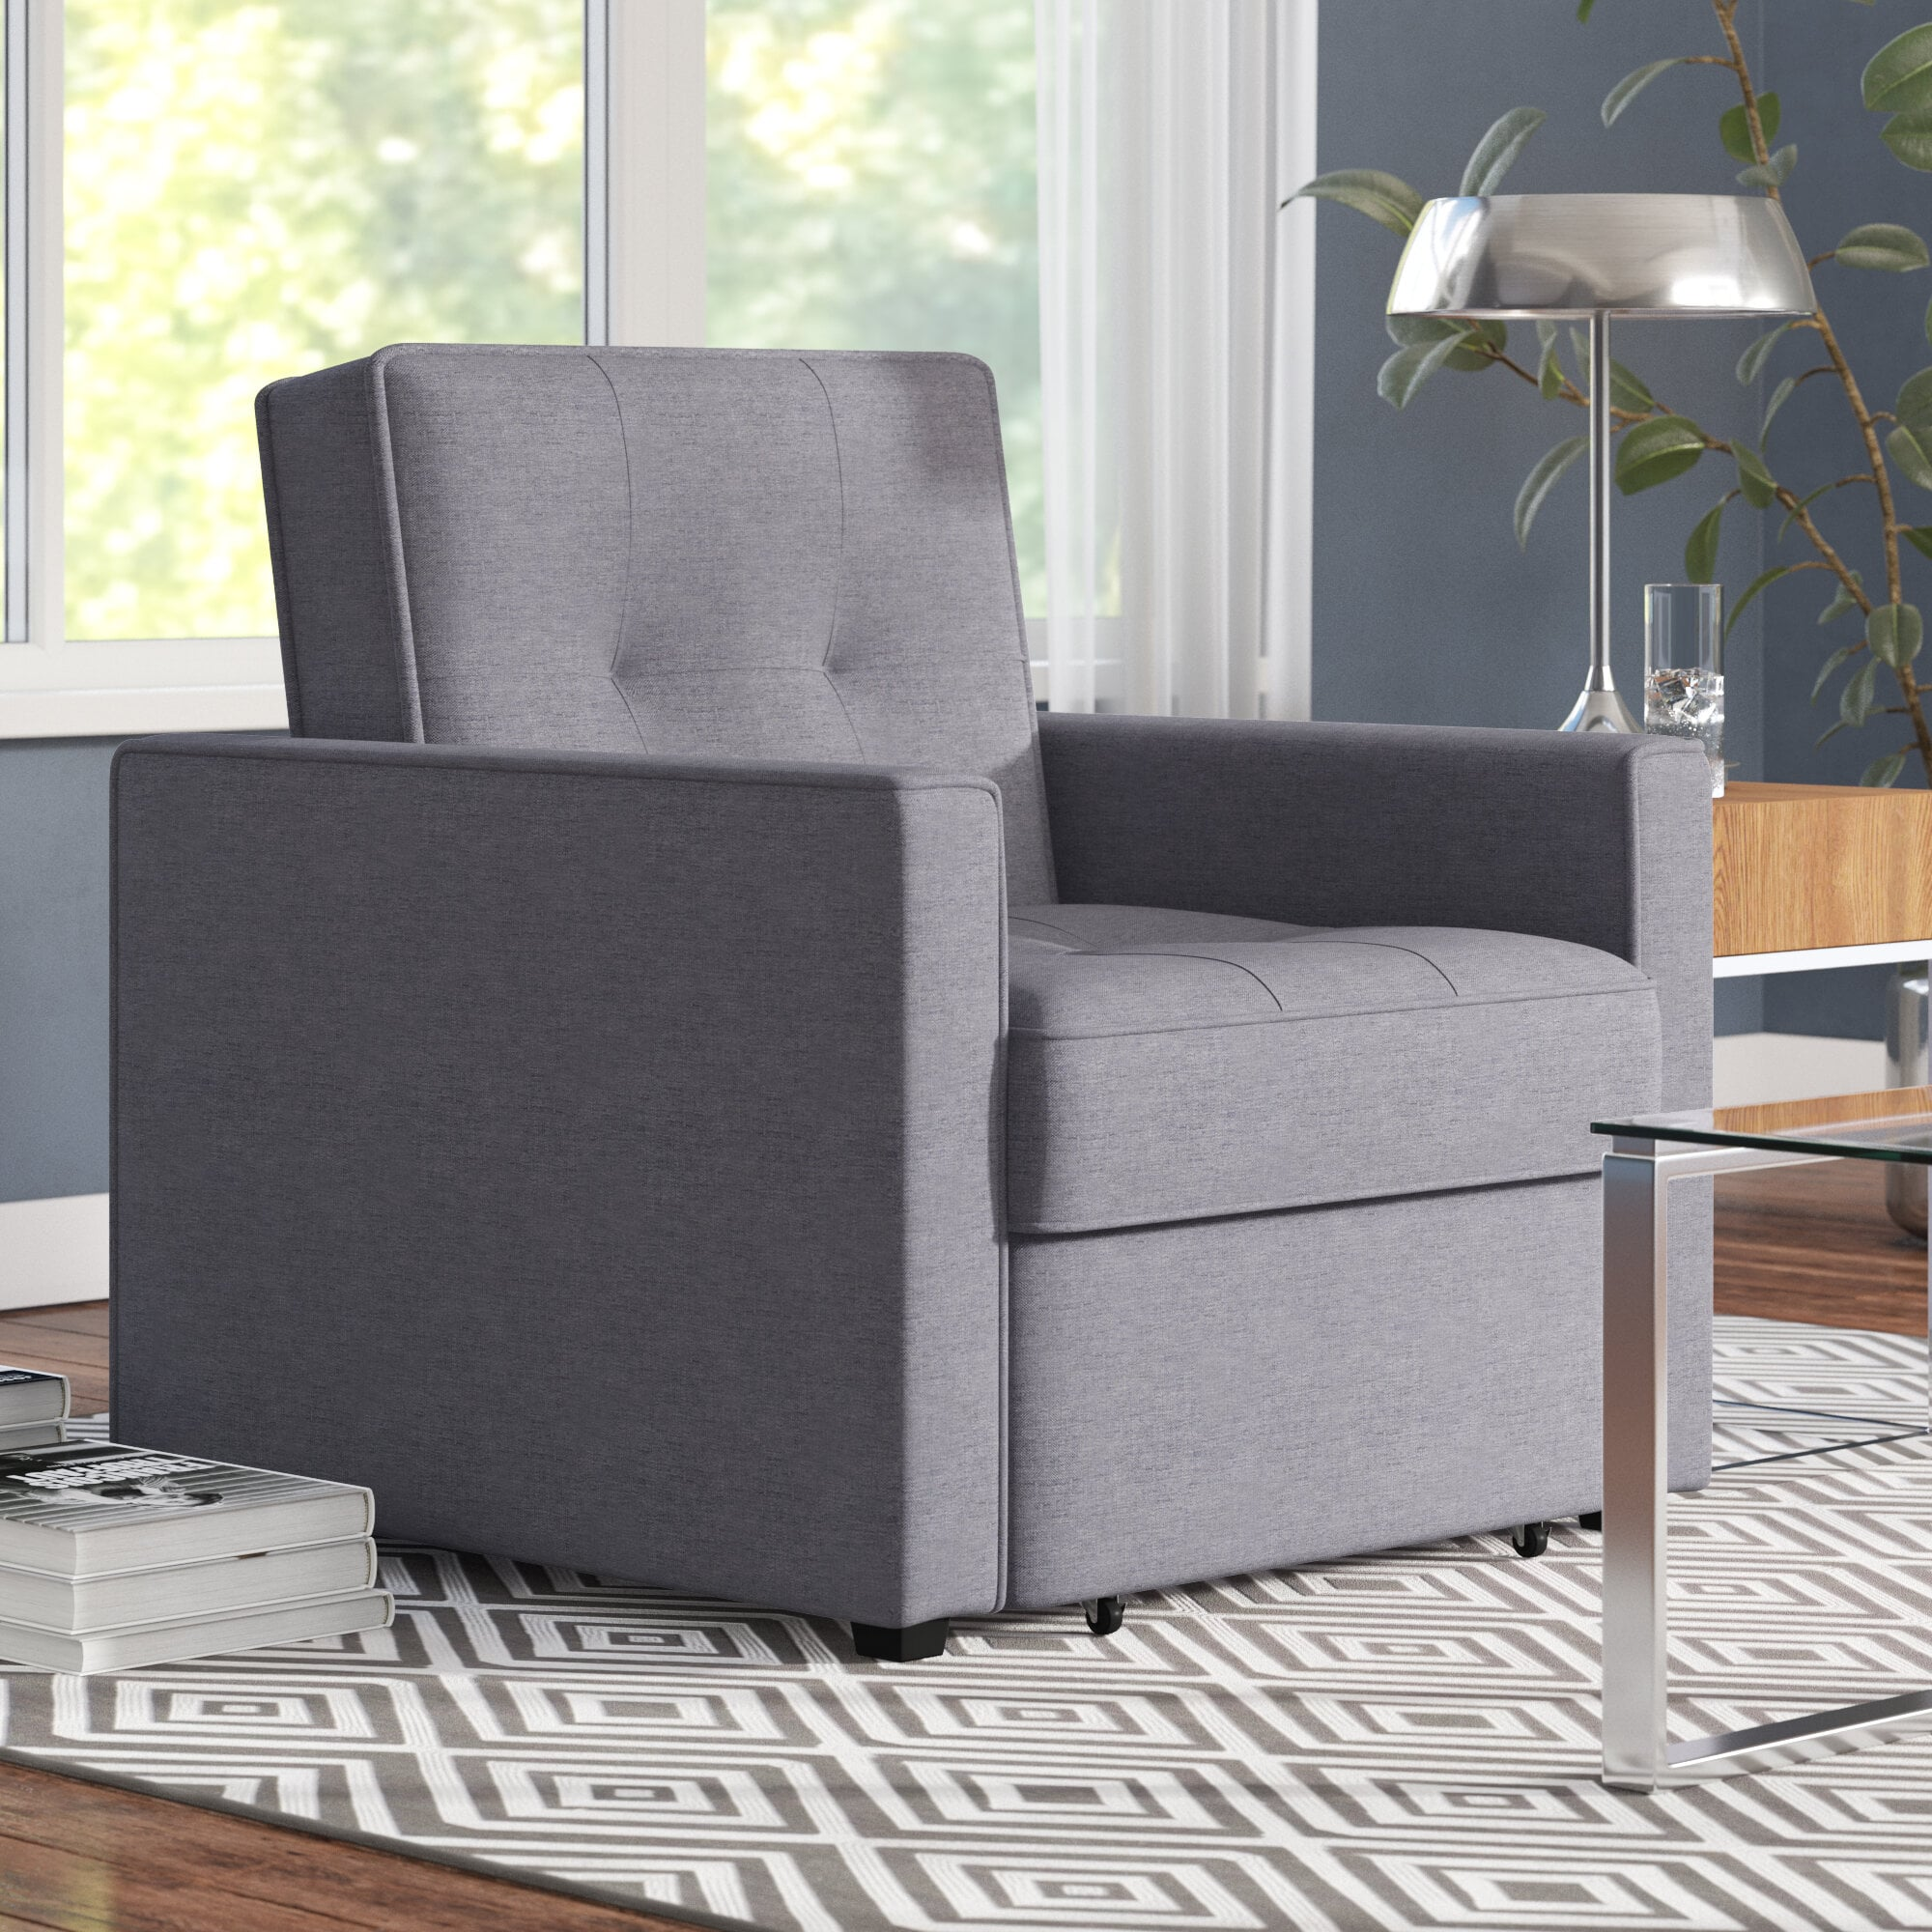 Space Saving Chairs That Turn Into Beds Popsugar Home